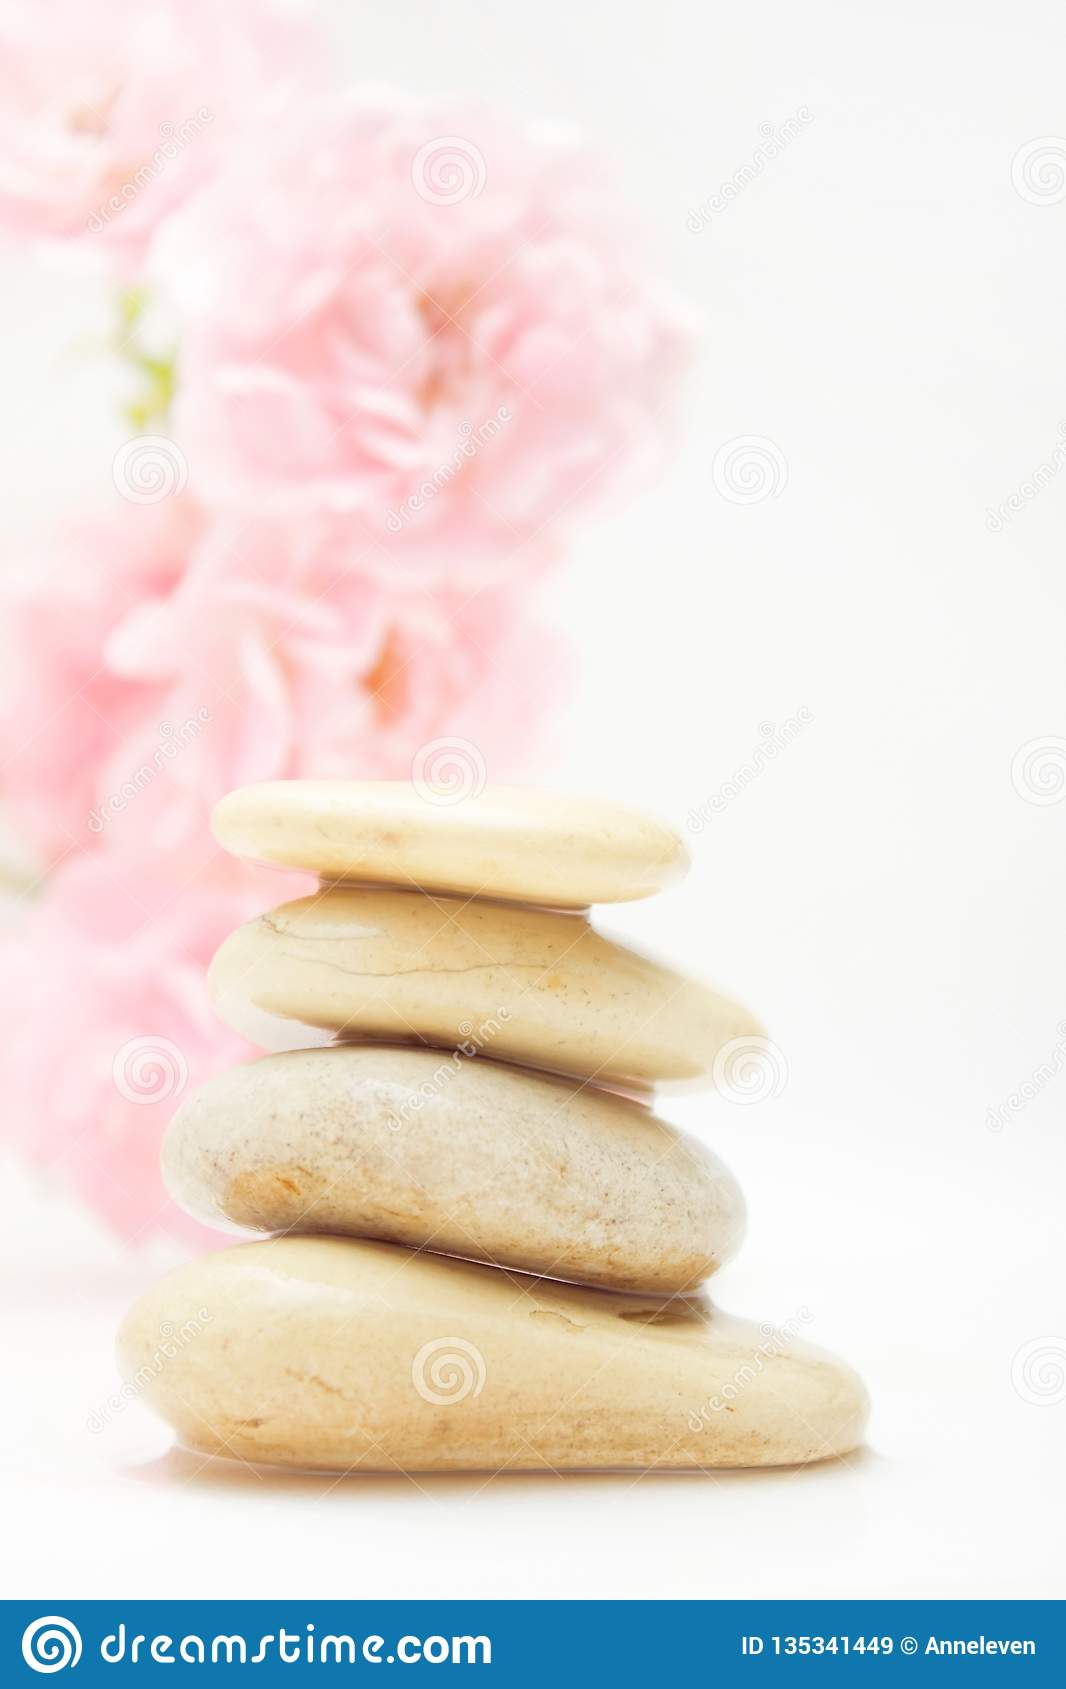 pile of hot massage stones - beauty, spa and body care styled concept